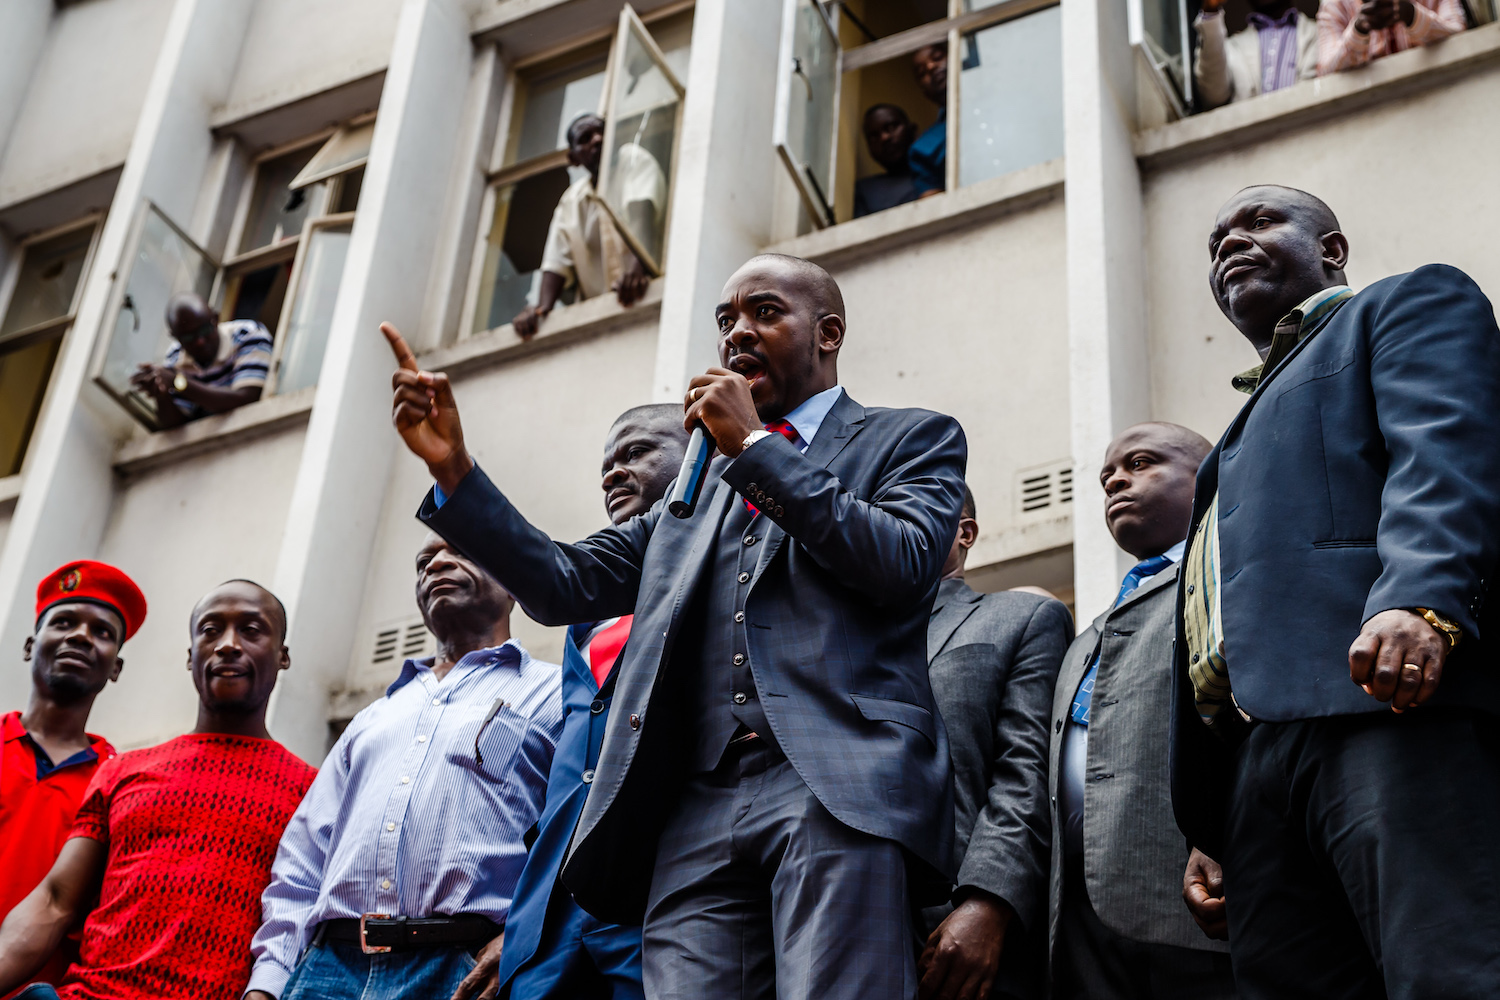 TOPSHOT - Zimbabwe opposition party Movement for Democratic Change (MDC) acting President Nelson Chamisa (C) addresses the crowd gathered outside Harvest House, the party headquarters, in Harare February 15, 2018 following the death of the veteran opposition leader. Zimbabwe was plunged into grief on February 15 following the death of veteran opposition leader Morgan Tsvangirai, roundly praised as a hero, champion of democracy and symbol of resistance who will be hard to replace. / AFP PHOTO / Jekesai NJIKIZANA        (Photo credit should read JEKESAI NJIKIZANA/AFP/Getty Images)